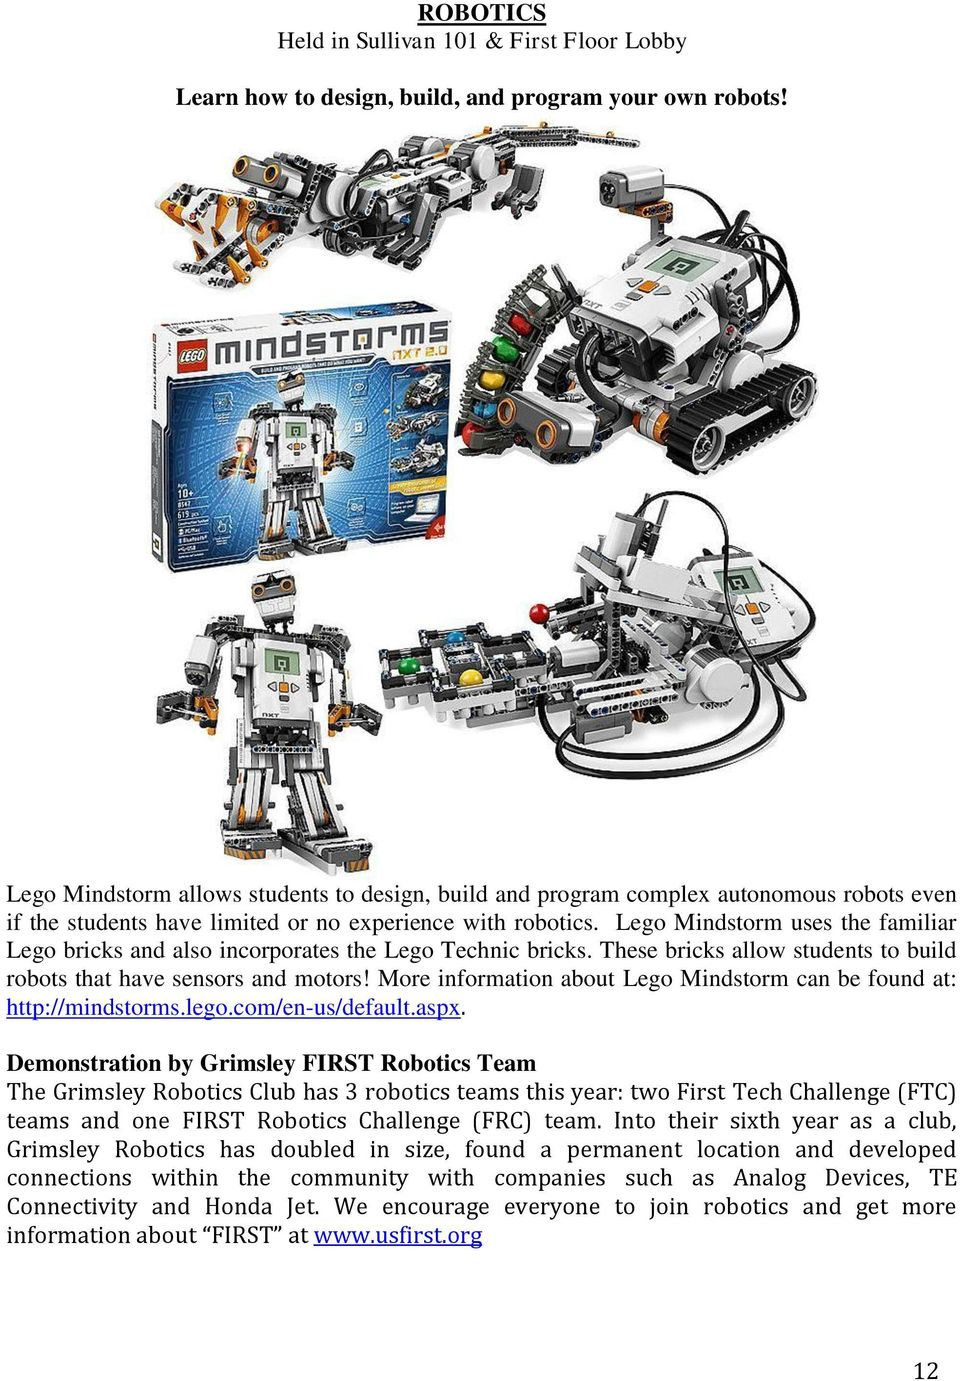 Lego Mindstorm uses the familiar Lego bricks and also incorporates the Lego Technic bricks. These bricks allow students to build robots that have sensors and motors!